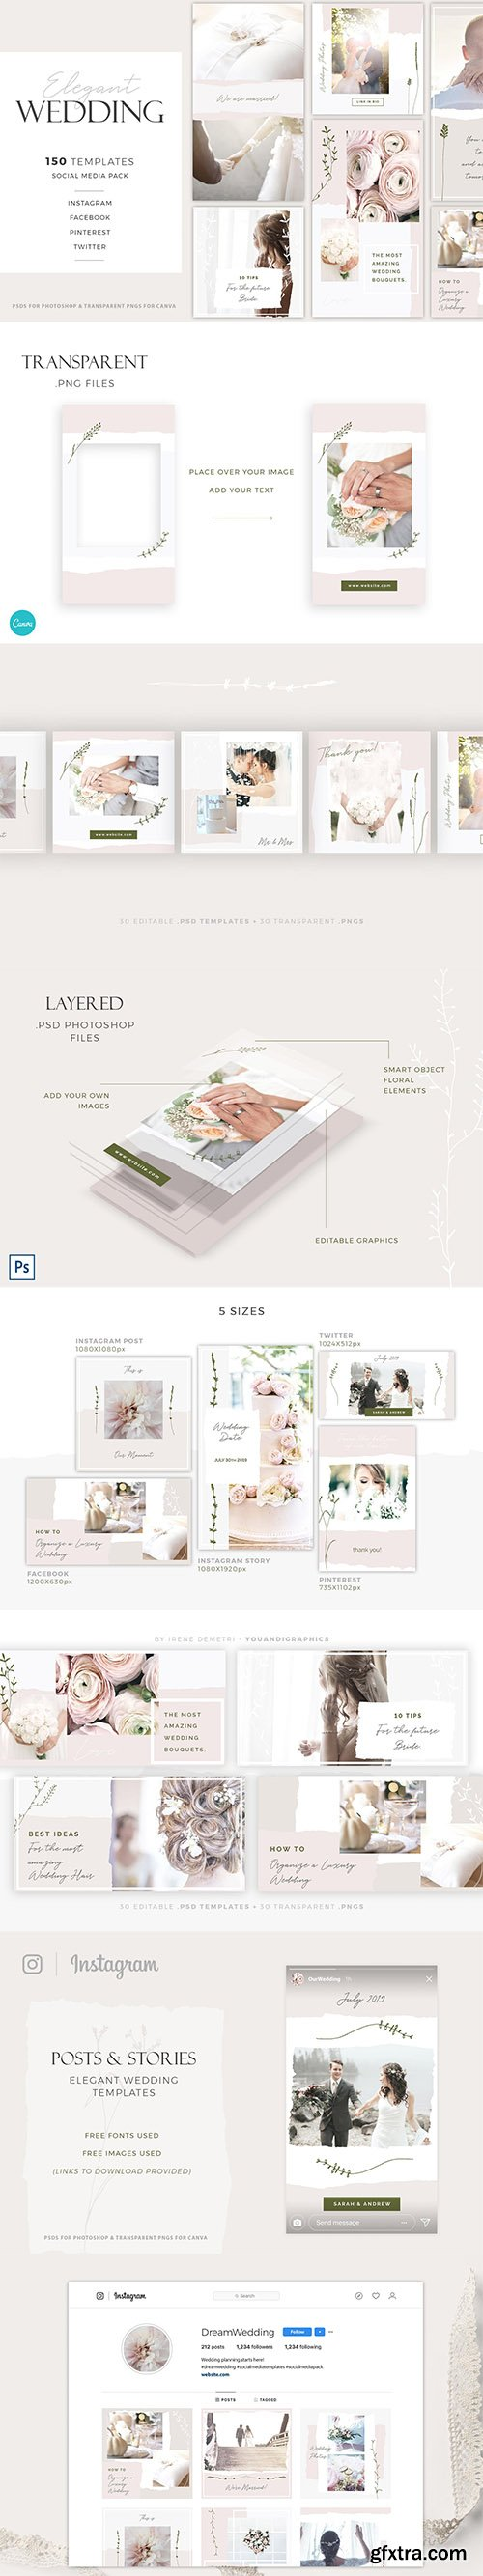 Elegant Wedding Social Media Pack